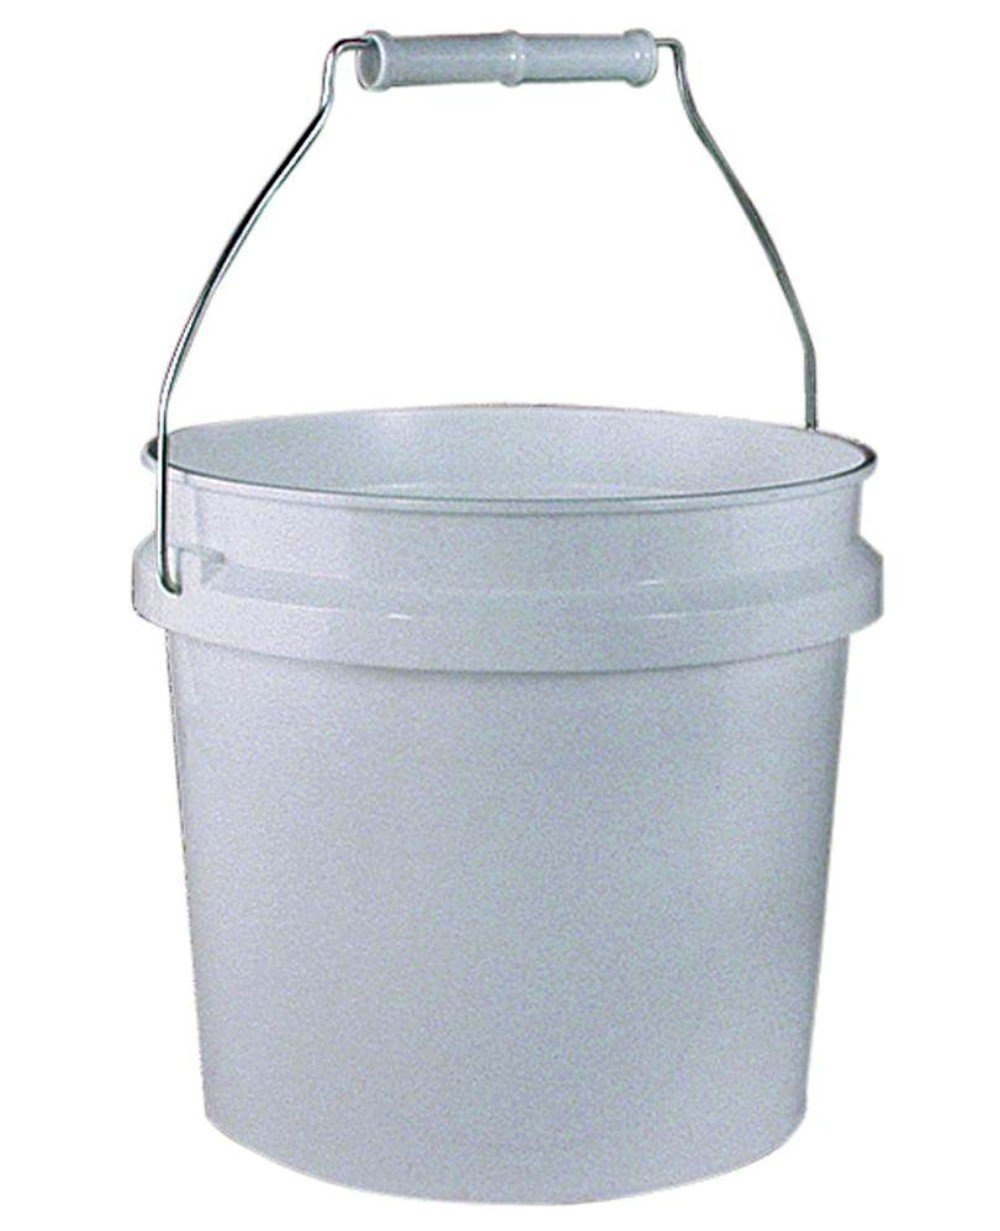 1 Gallon White Bucket with Lid & Gasket per 6 Pack